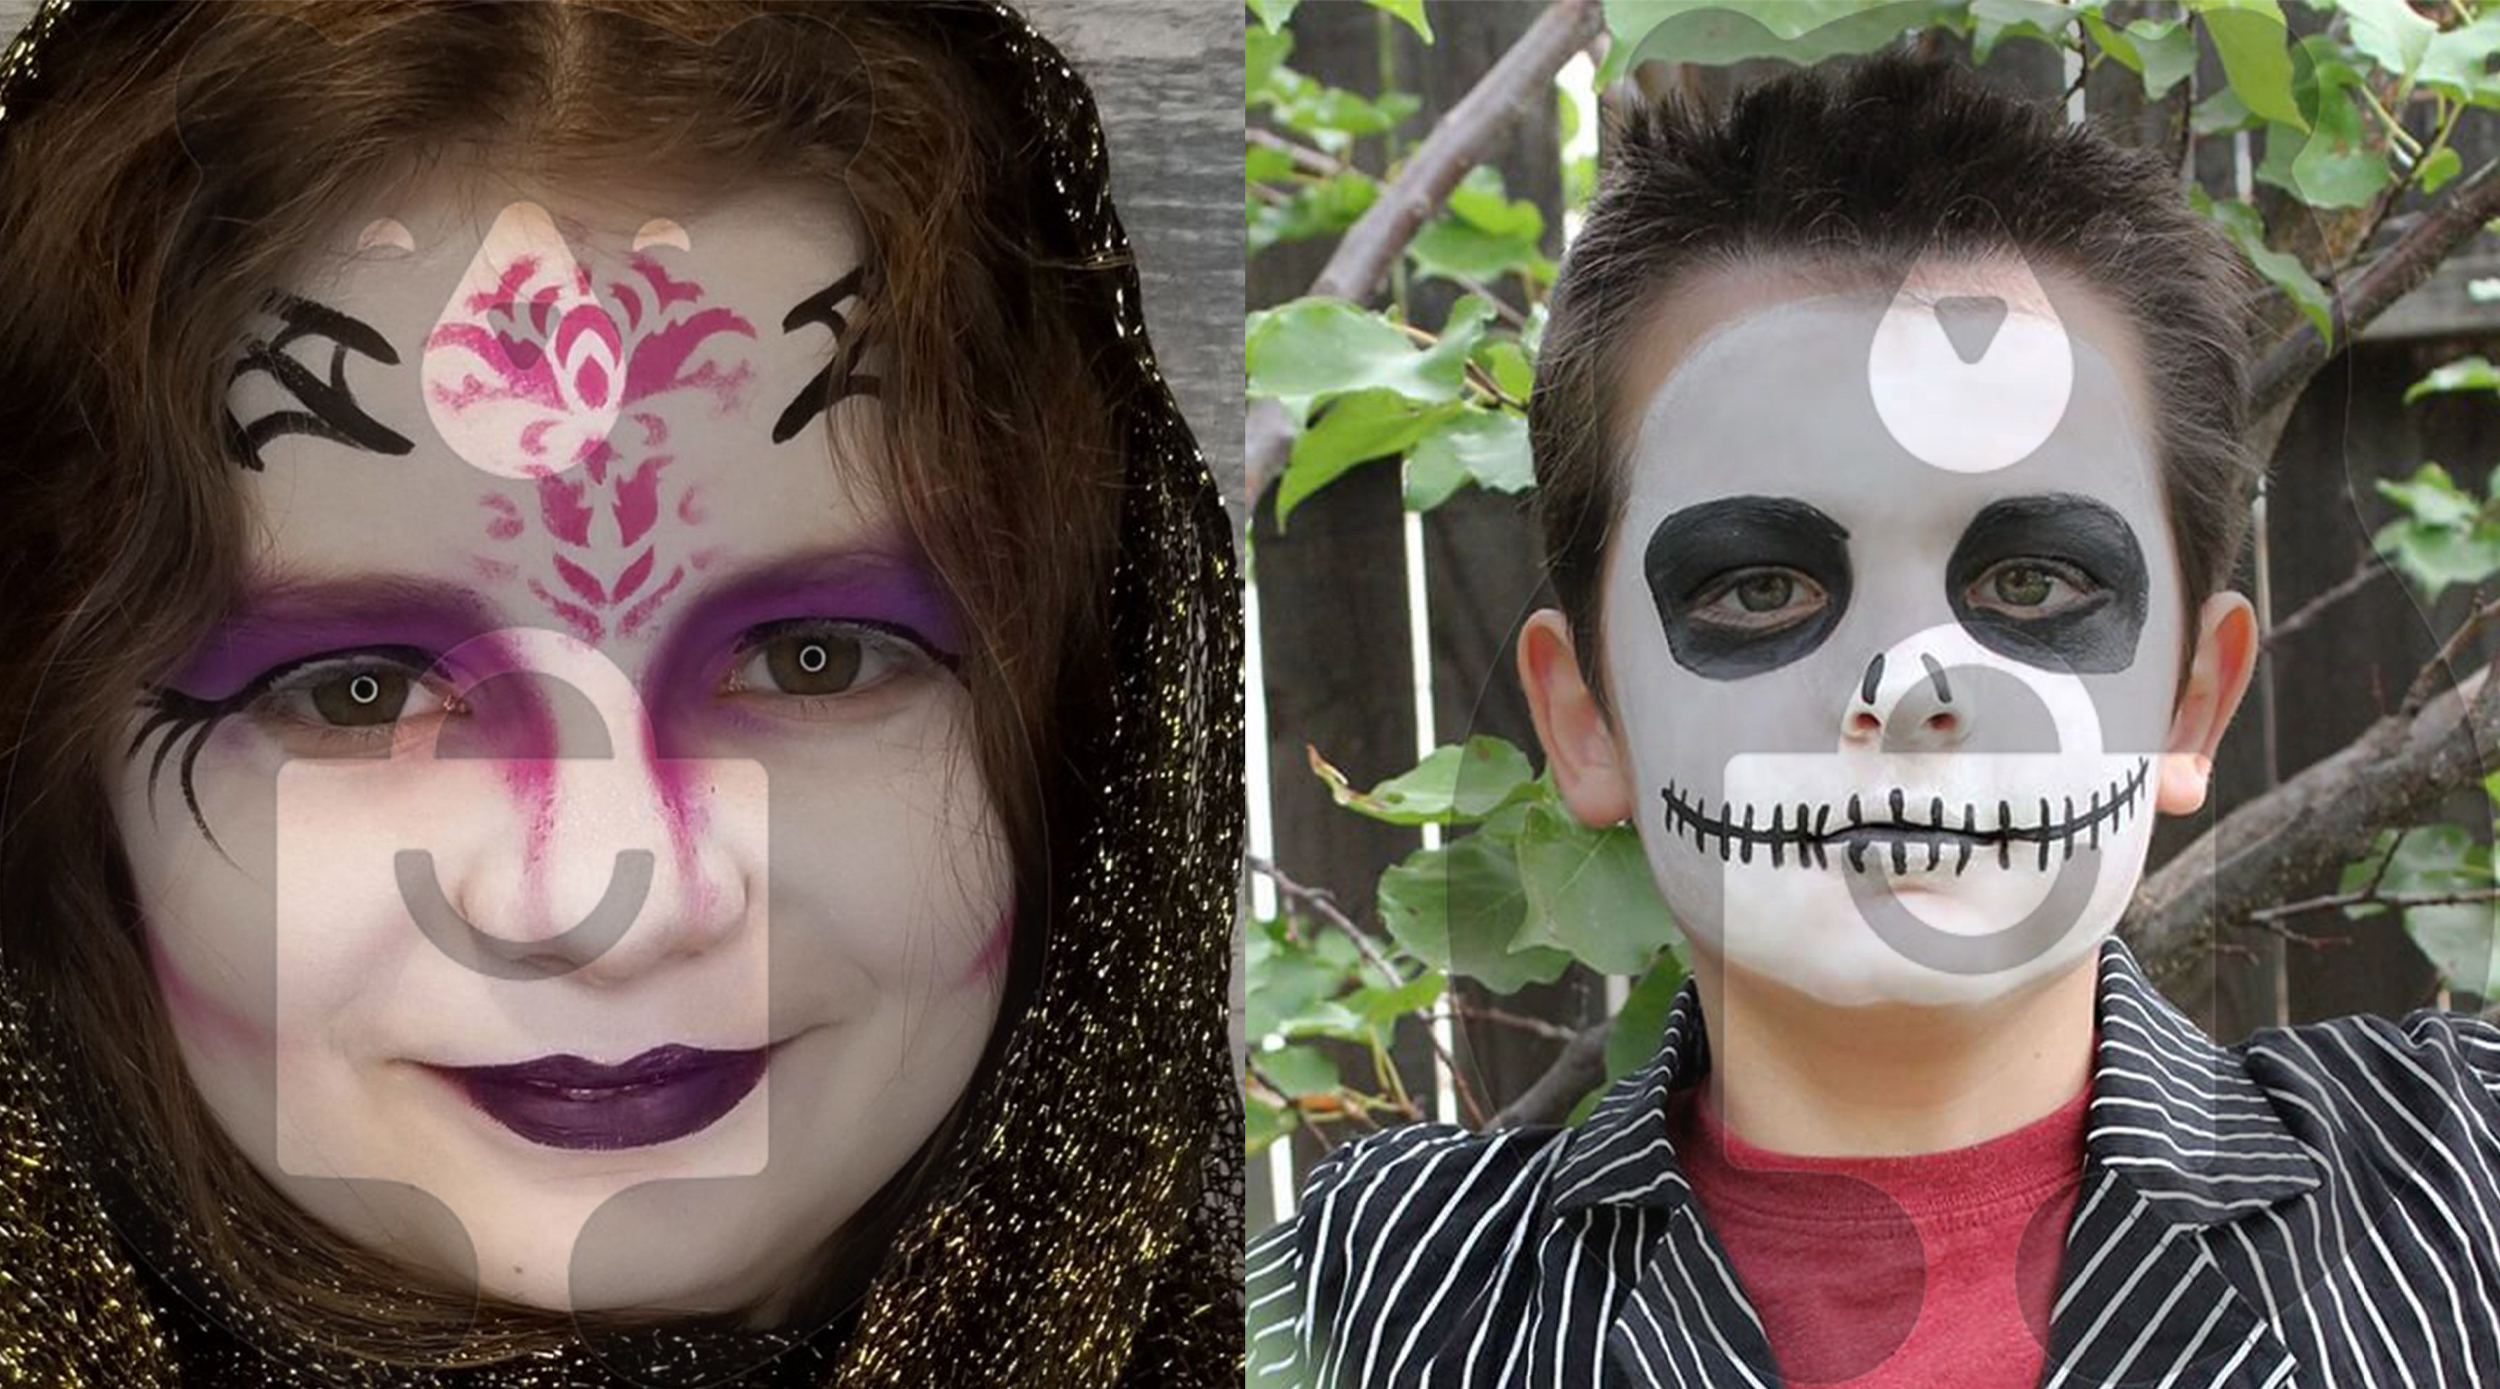 The best face paint ideas for children and adults